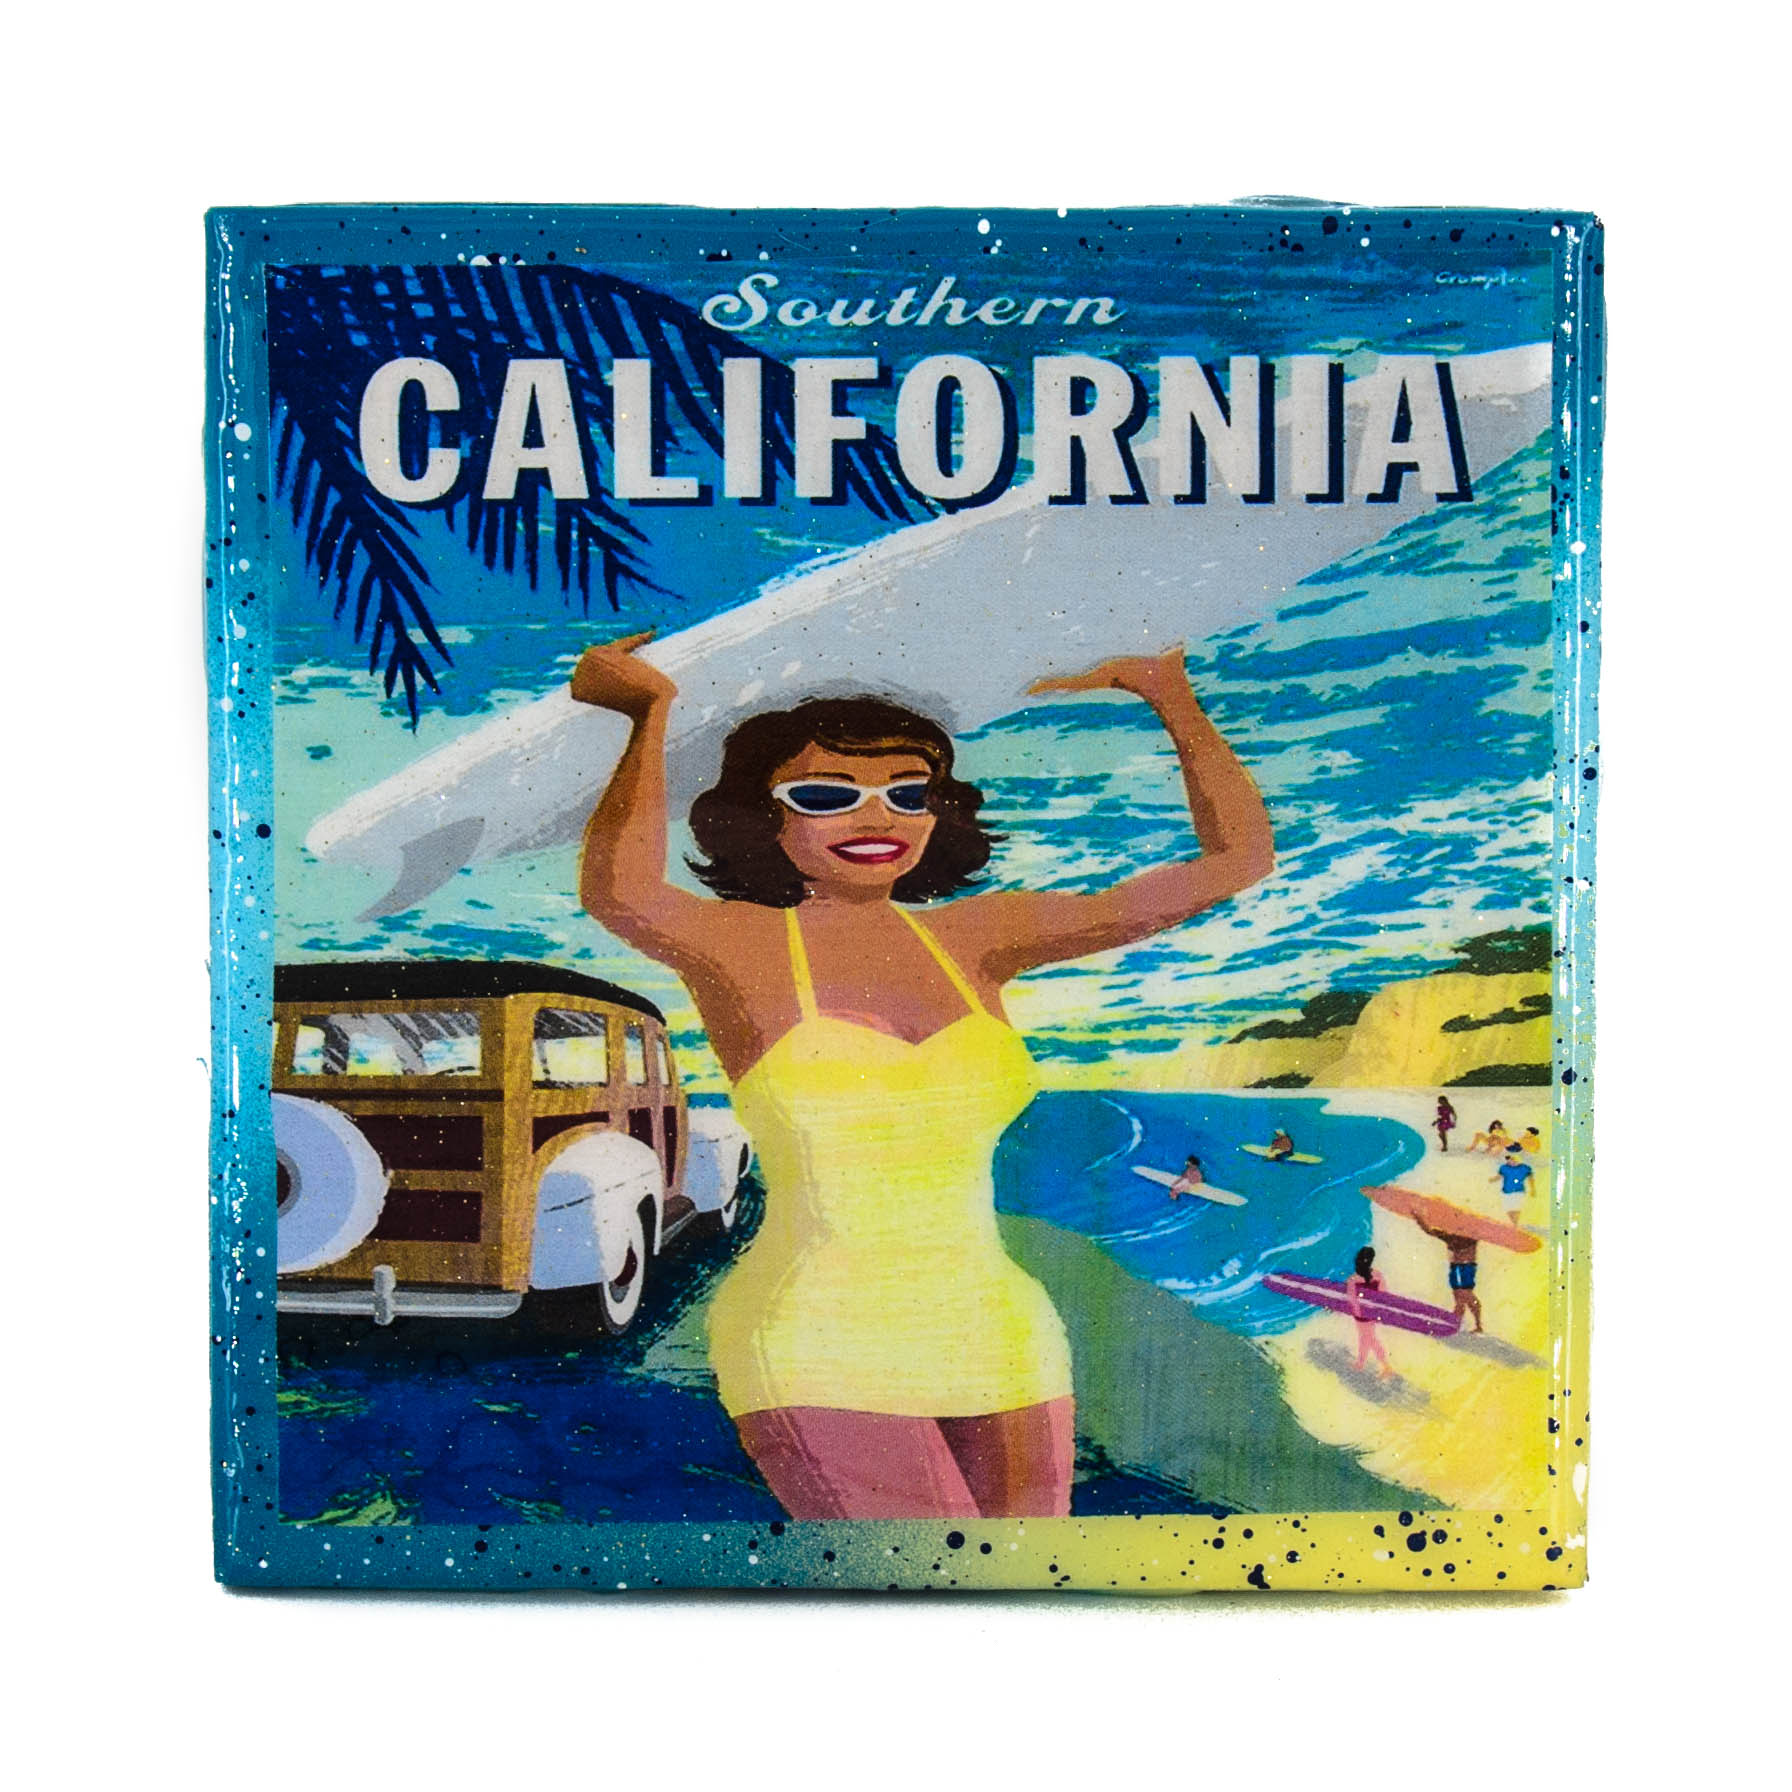 Handmade Coaster Vintage Travel Ad Southern California Surfer Girl Recycled Tile Coaster Sold By Stella Divina On Storenvy